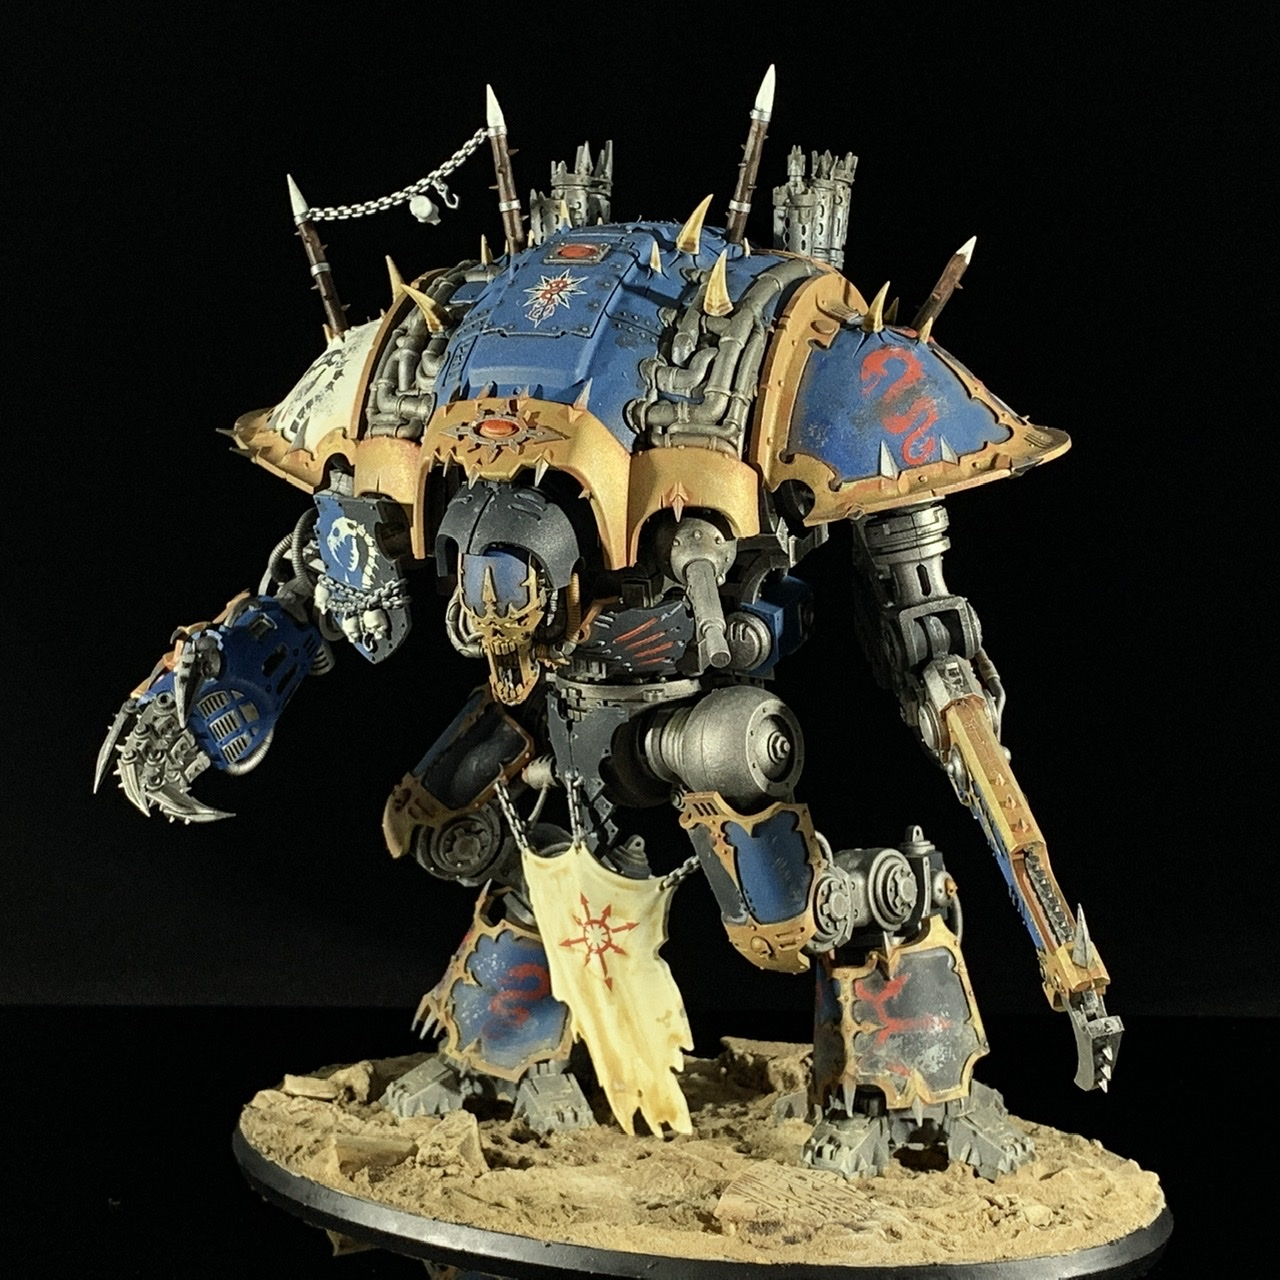 Chaos Knight. Credit: Mike Bettle-Shaffer